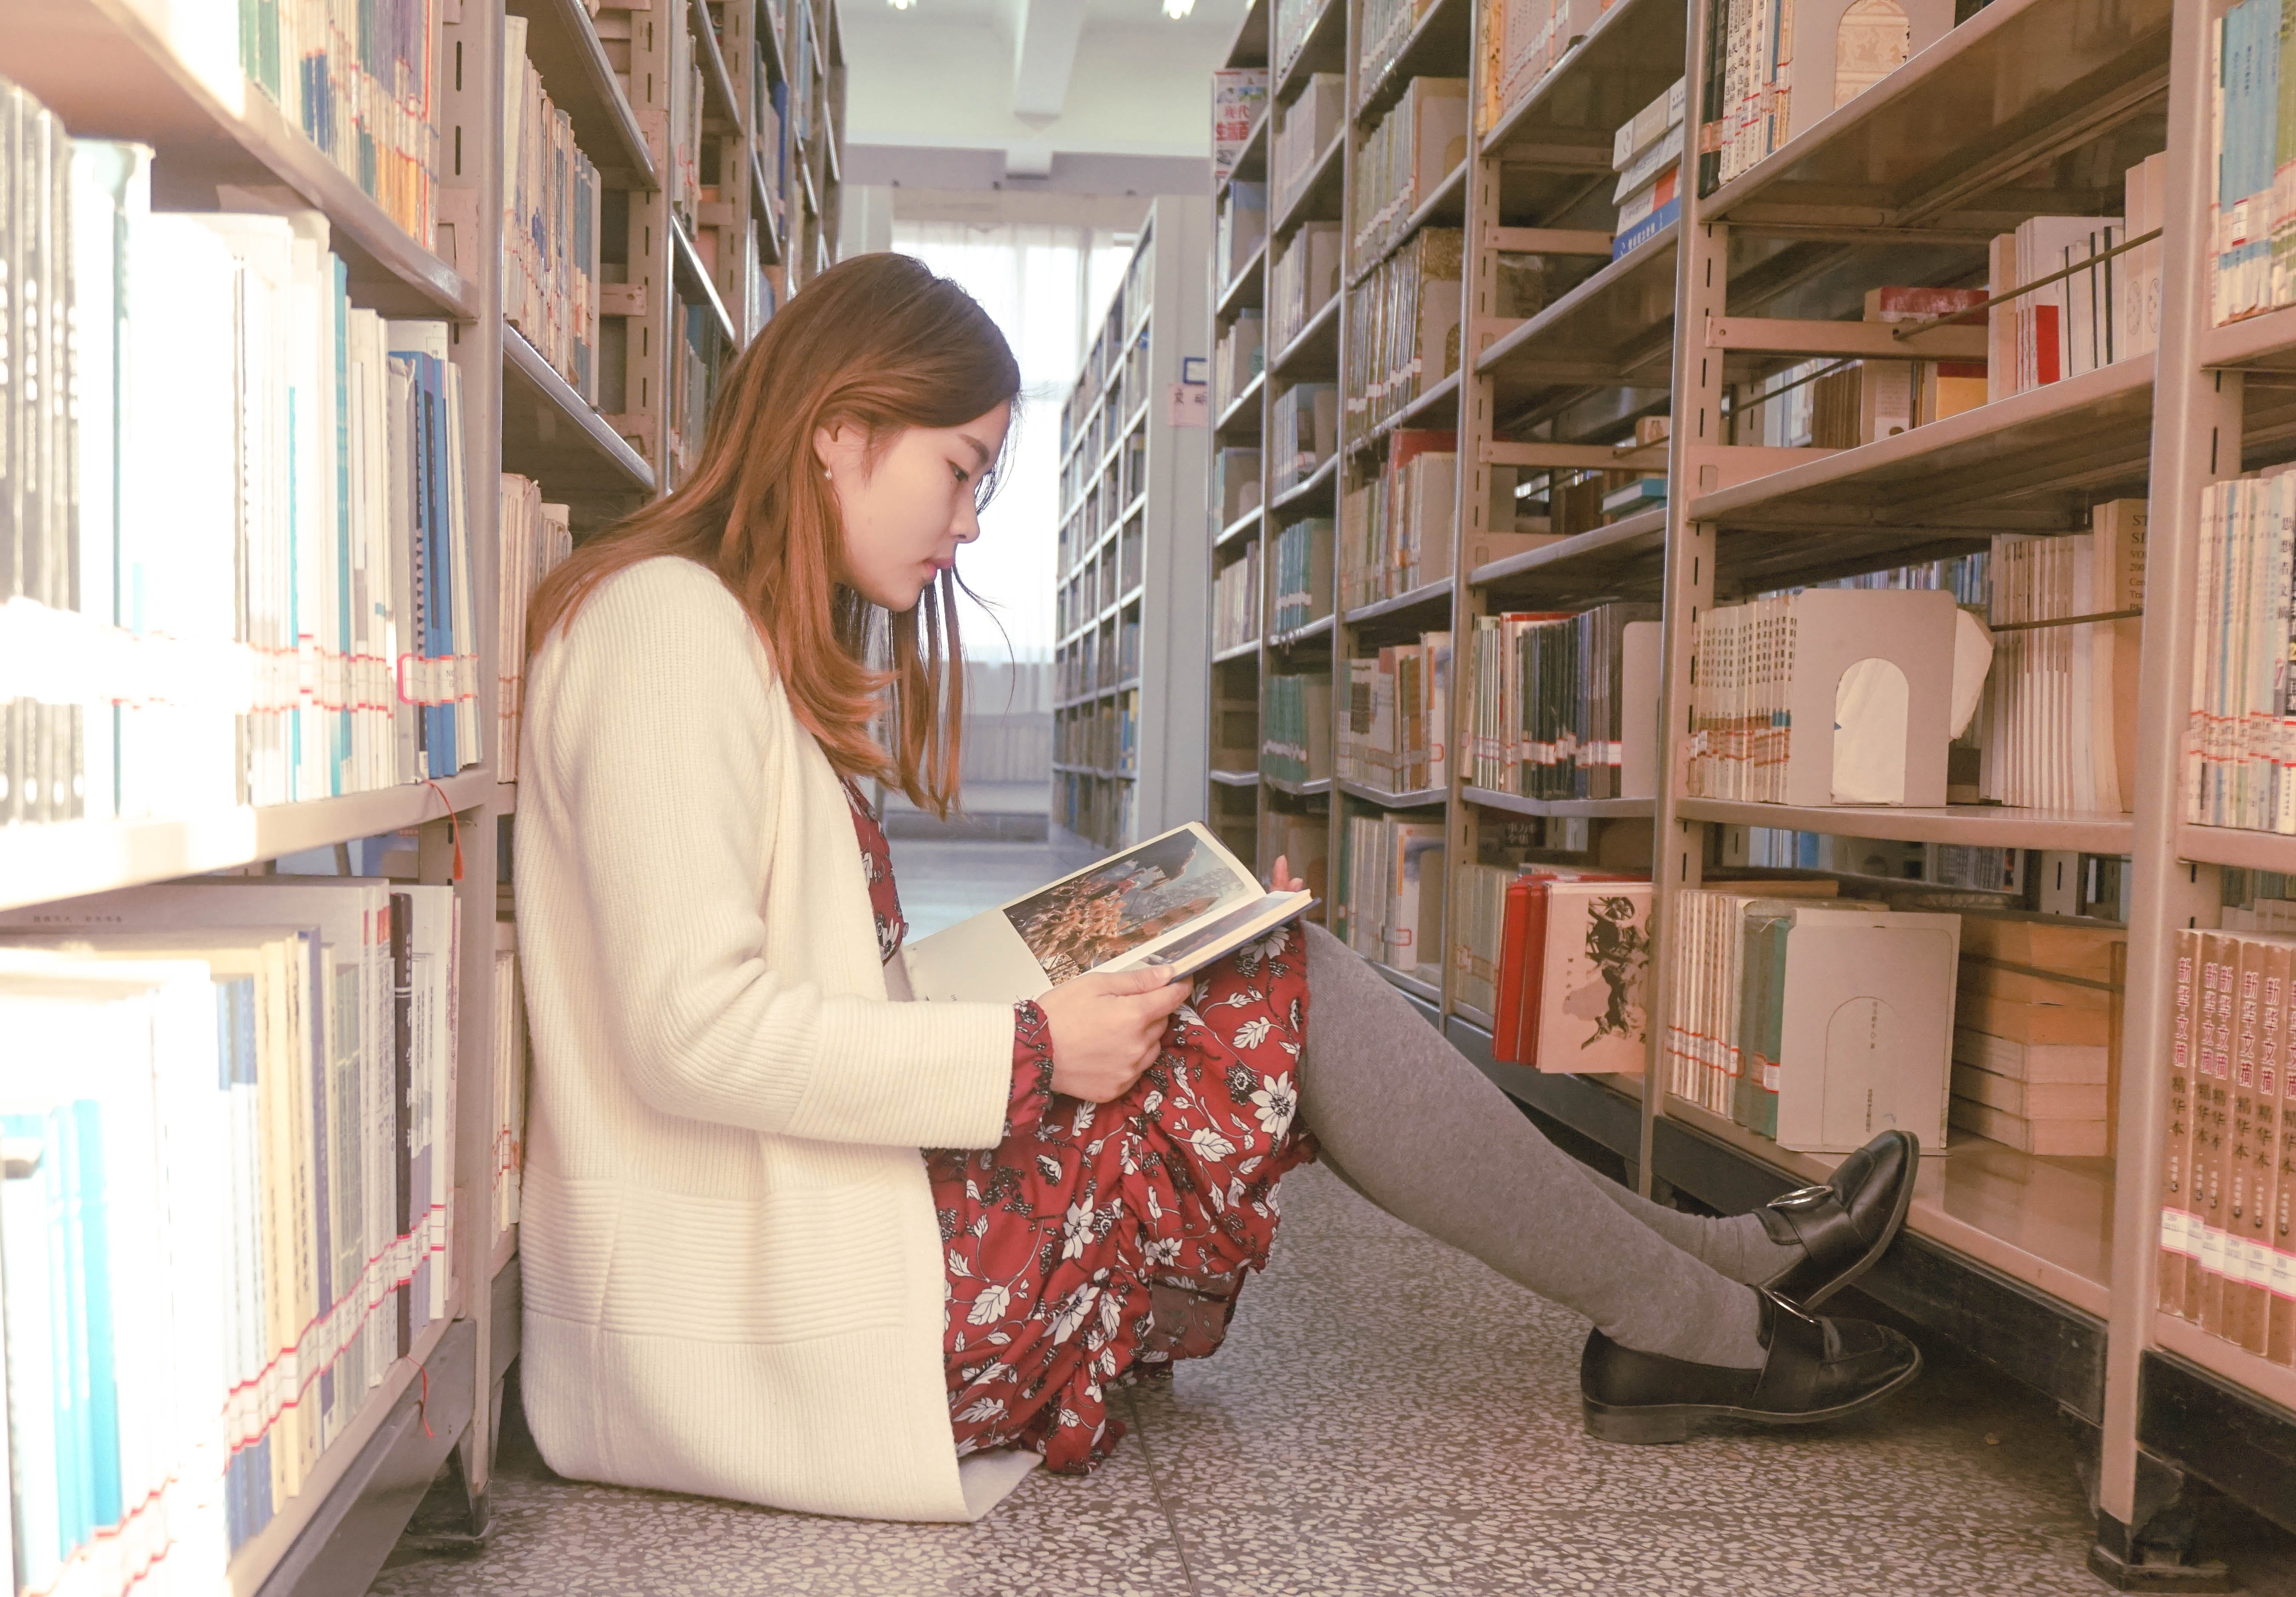 Photo of a Woman Reading Book